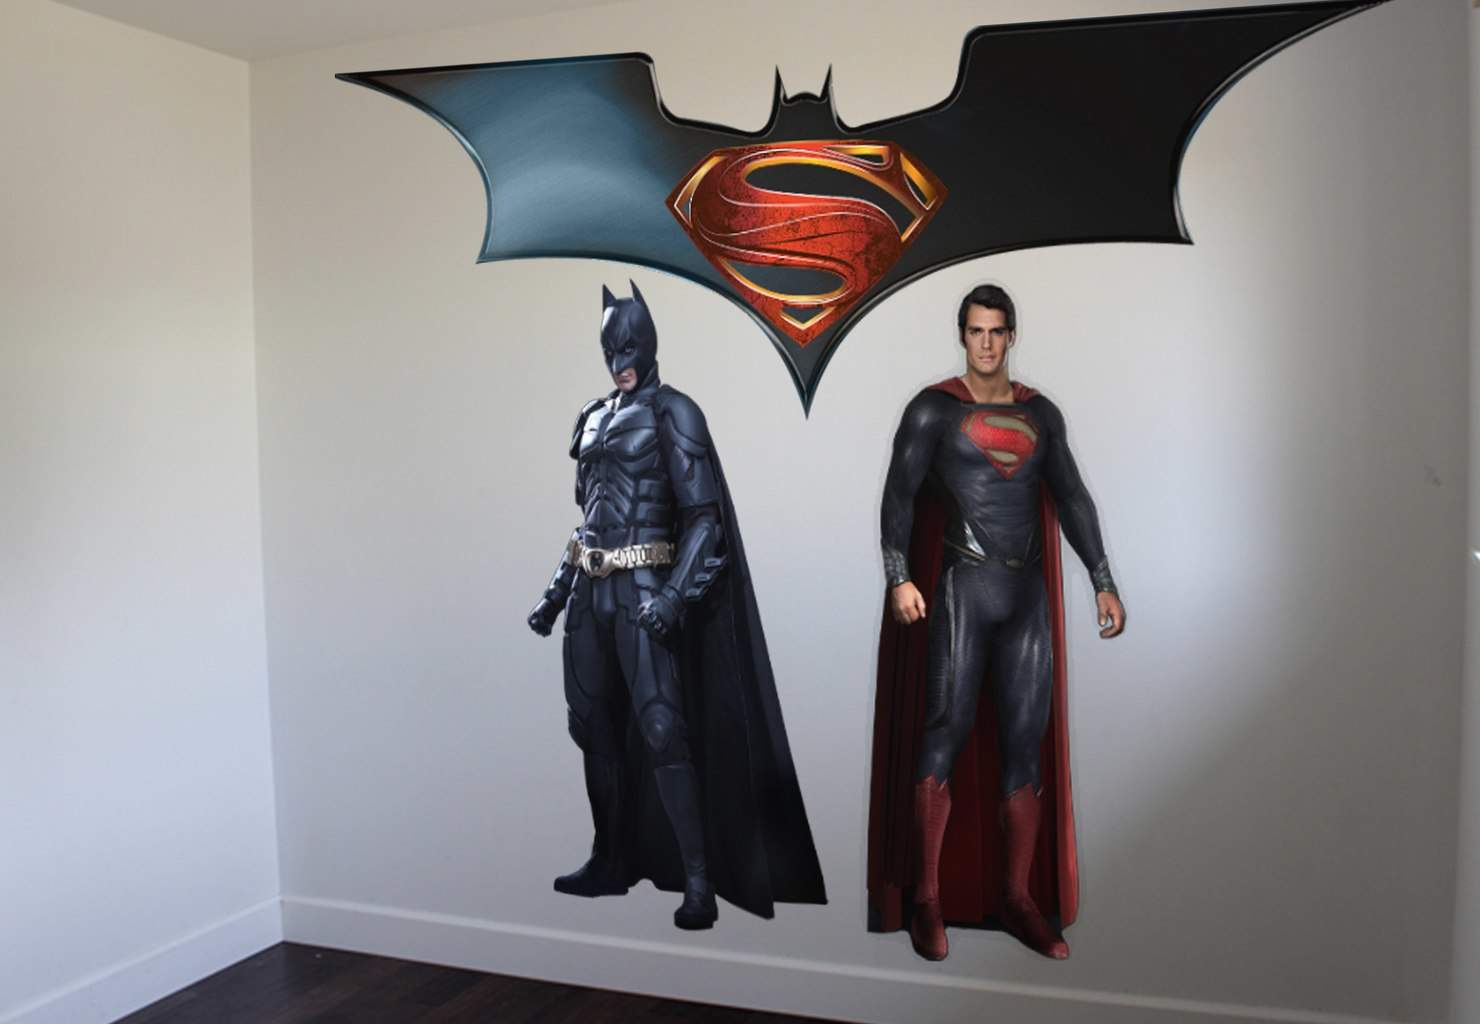 Superman vs batman wall sticker on ey wall decals for Batman wall mural decal